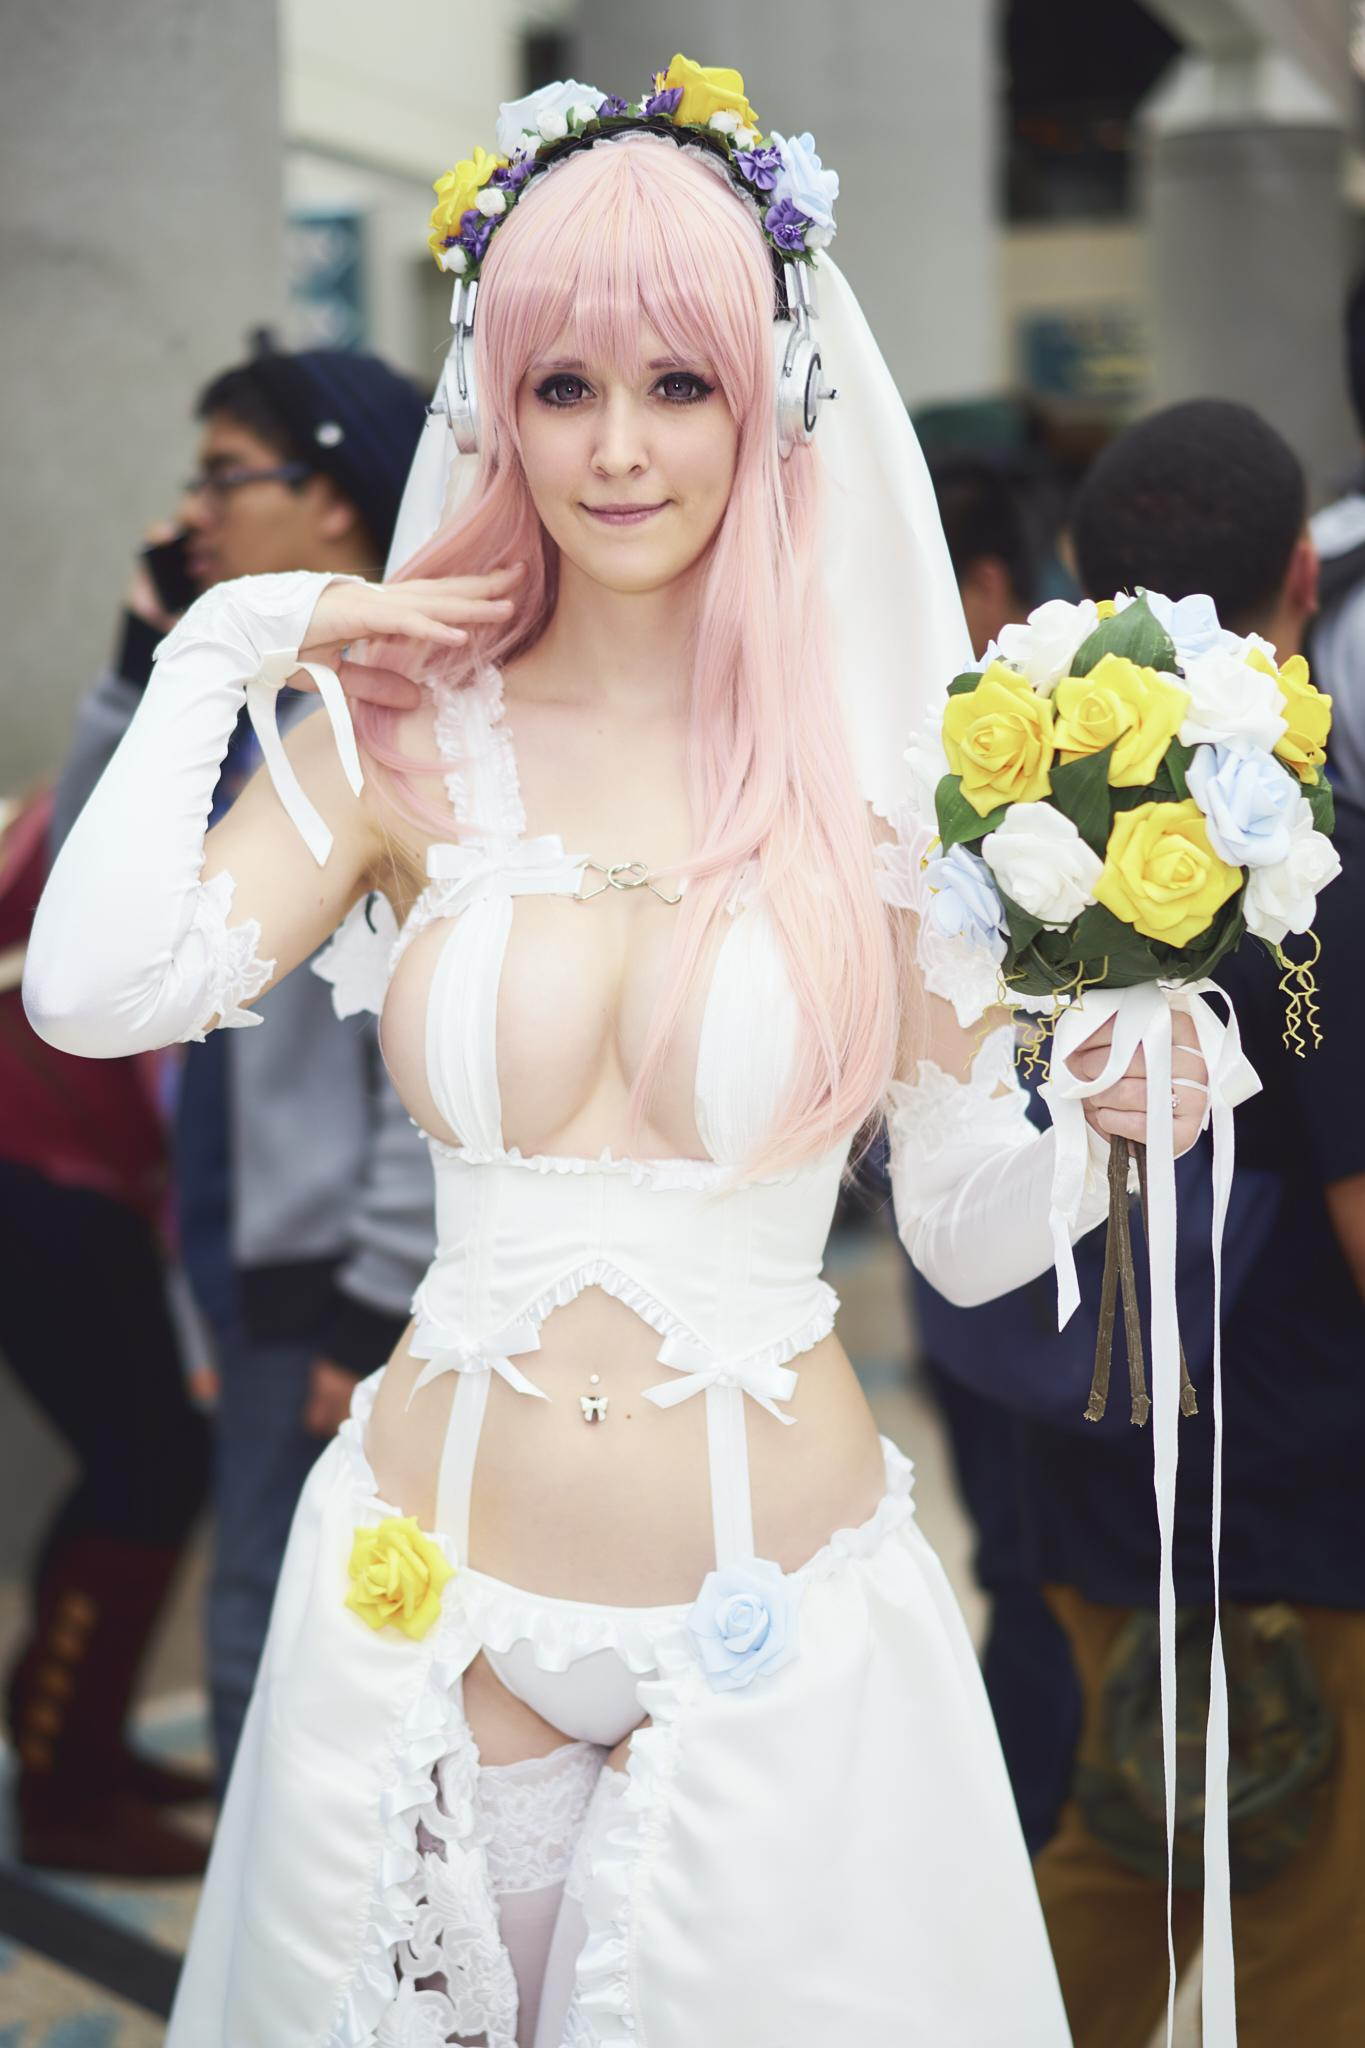 Wedding Sonico By Qkicosplay